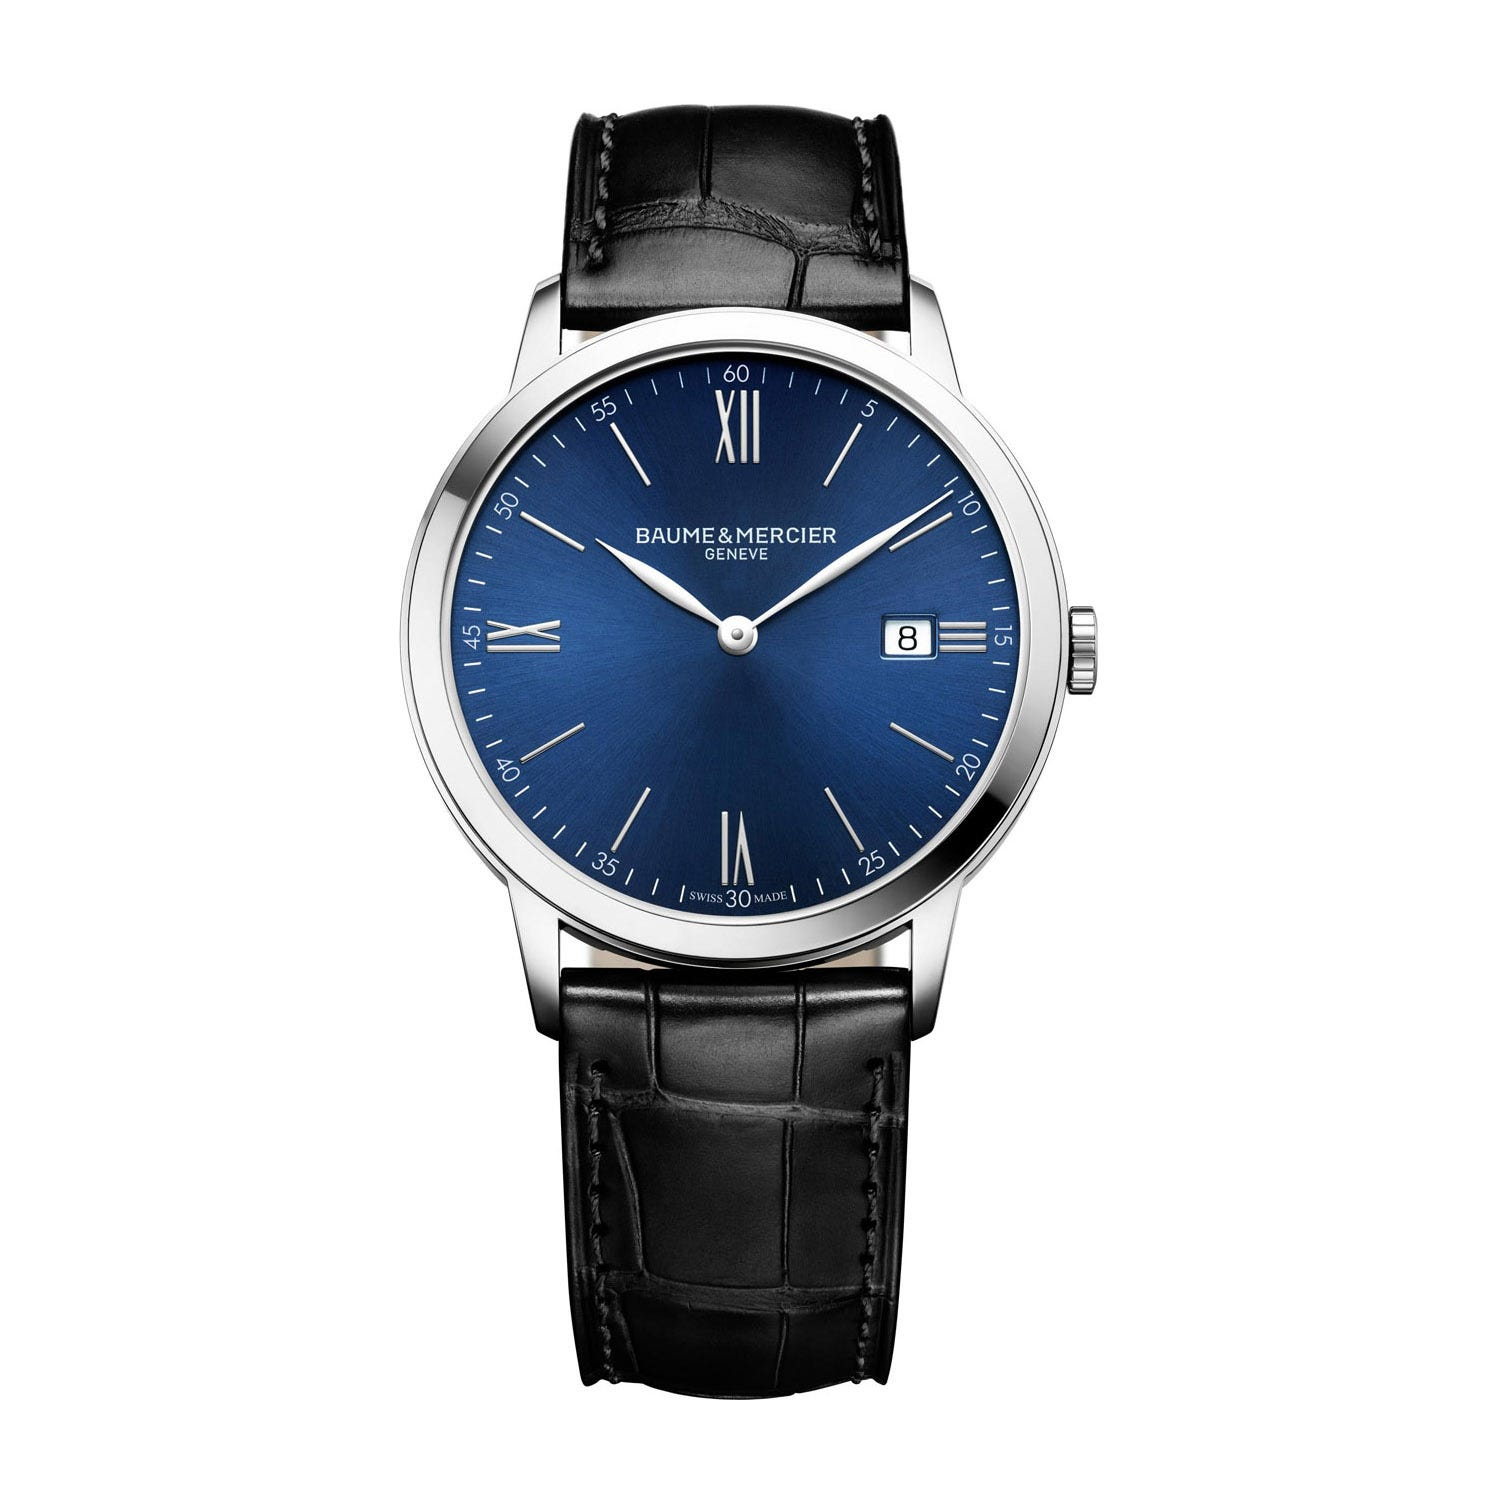 Baume & Mercier Classima Blue Dial Black Leather Men's Watch